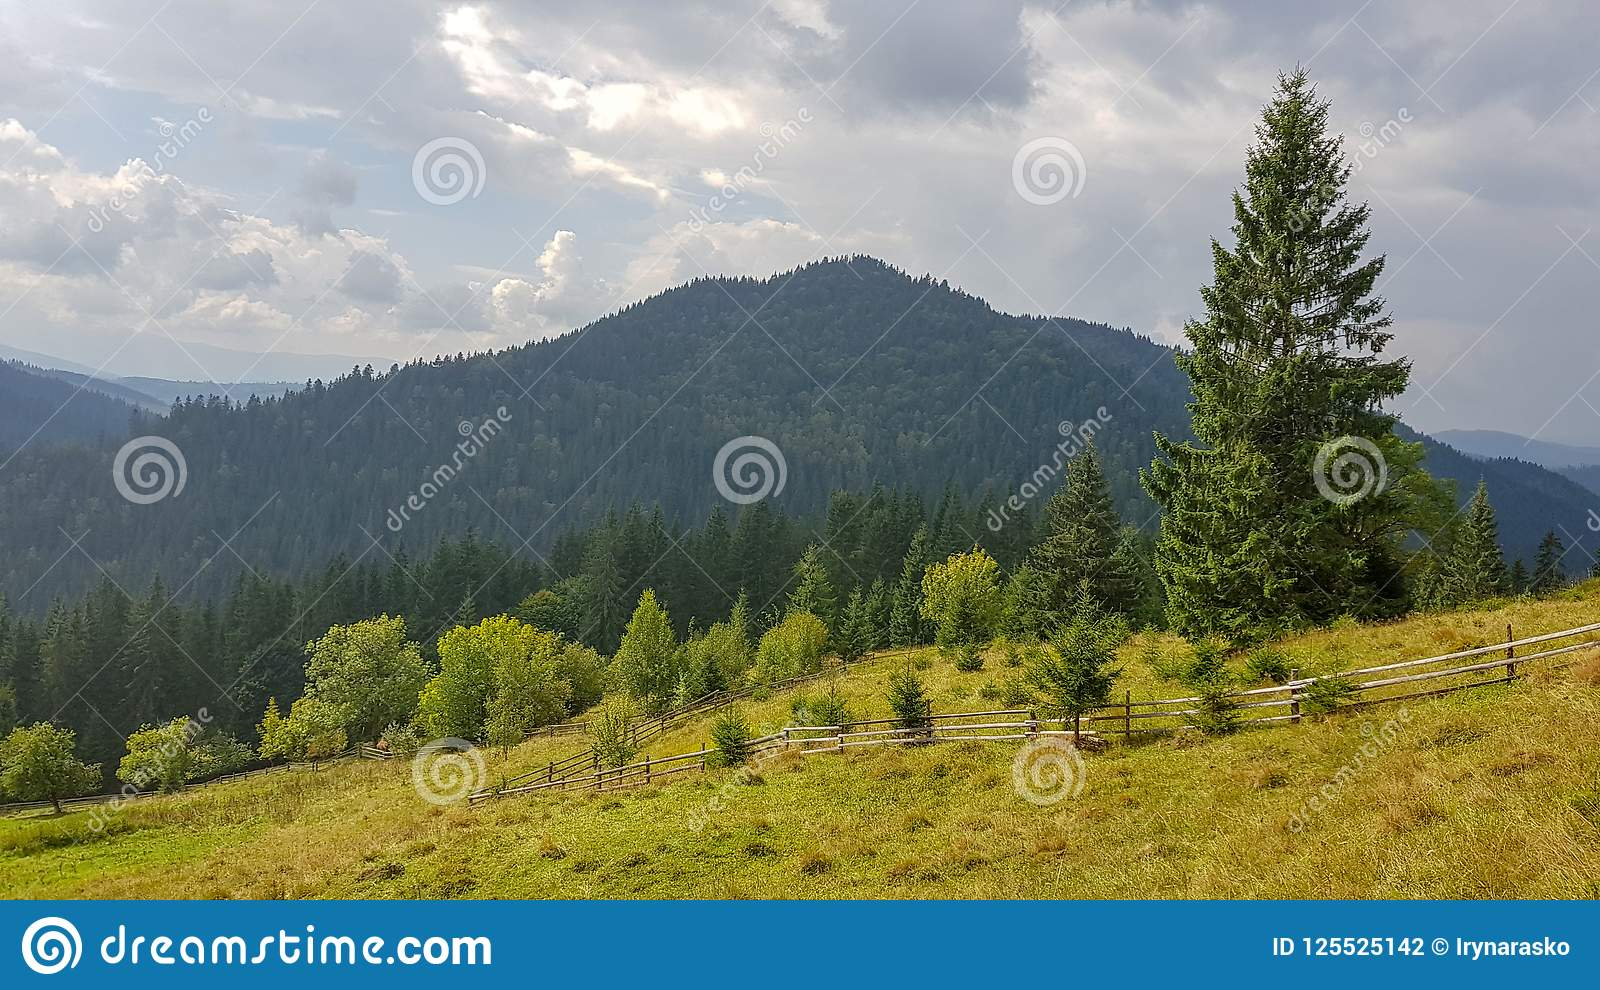 Download Beautiful Natural Landscape In Green Mountains And Fields Stock Photo - Image of fields, ukraine: 125525142